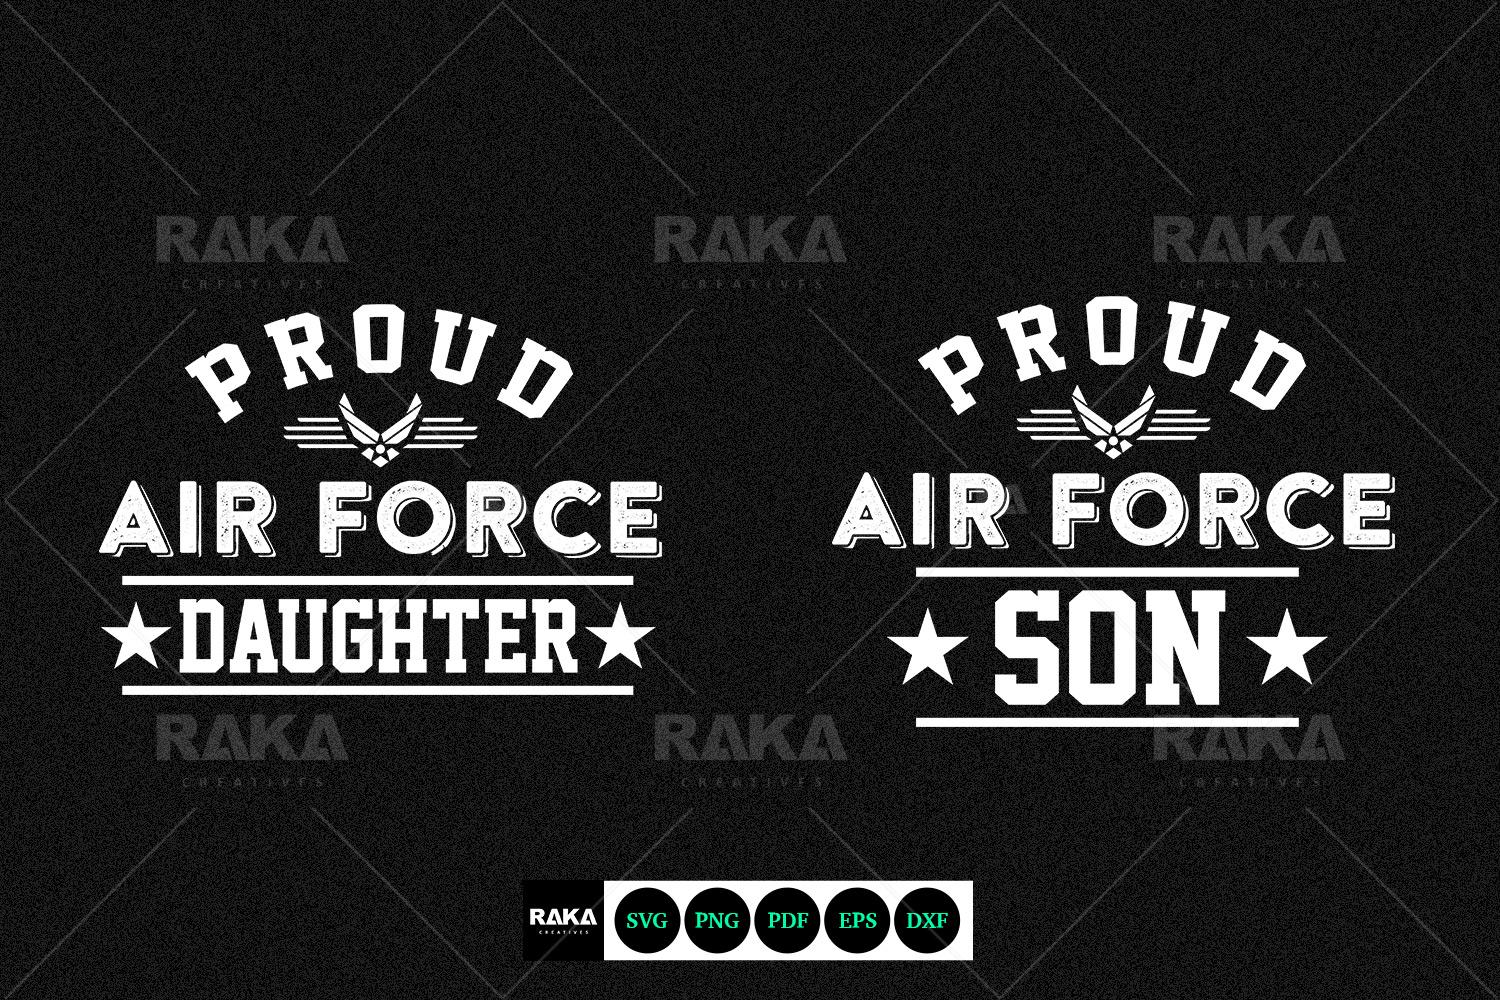 Proud Us Air Force Son Daughter Military Family In Svg Files Picastock